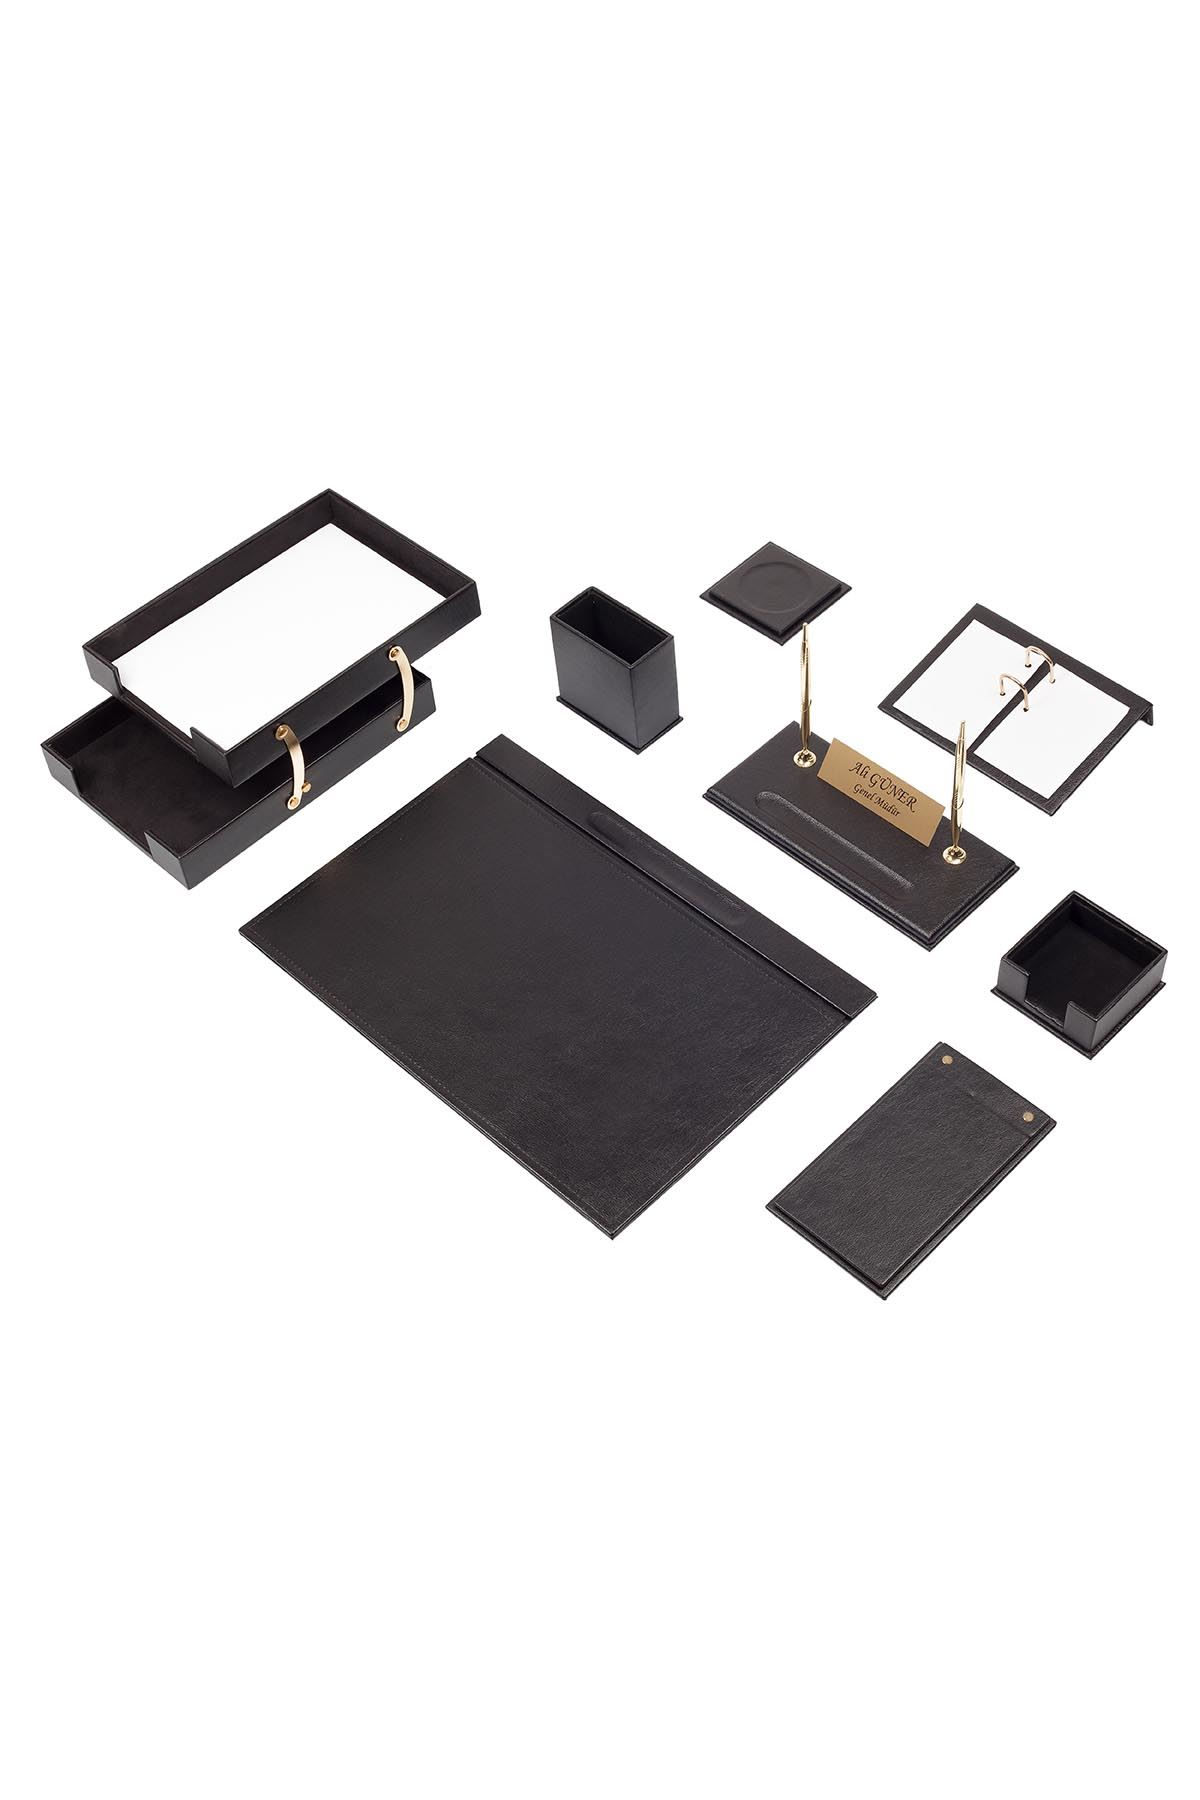 Luxury Leather Desk Set Black 10 Accessories - Double Document Tray